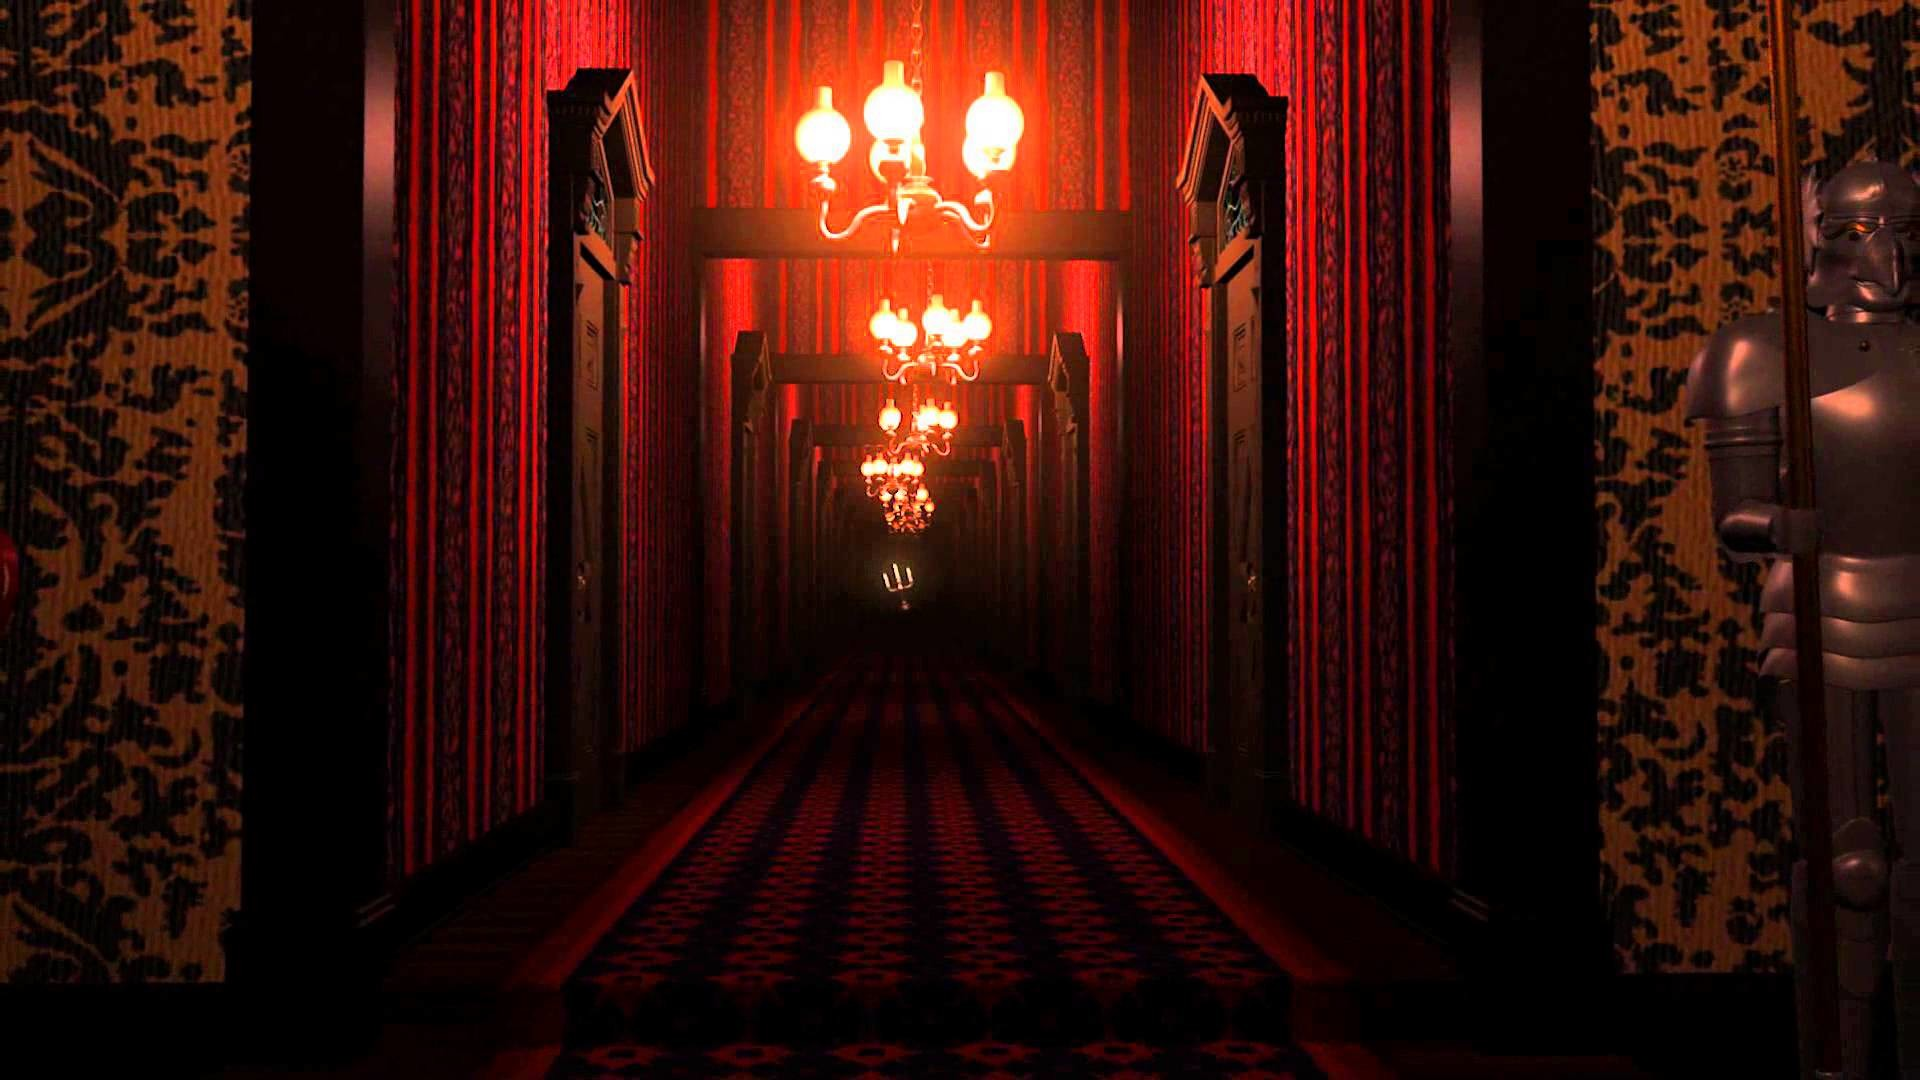 A short preview of the Endless Hallway sequence from my Digital recreation  of the Haunted Mansion